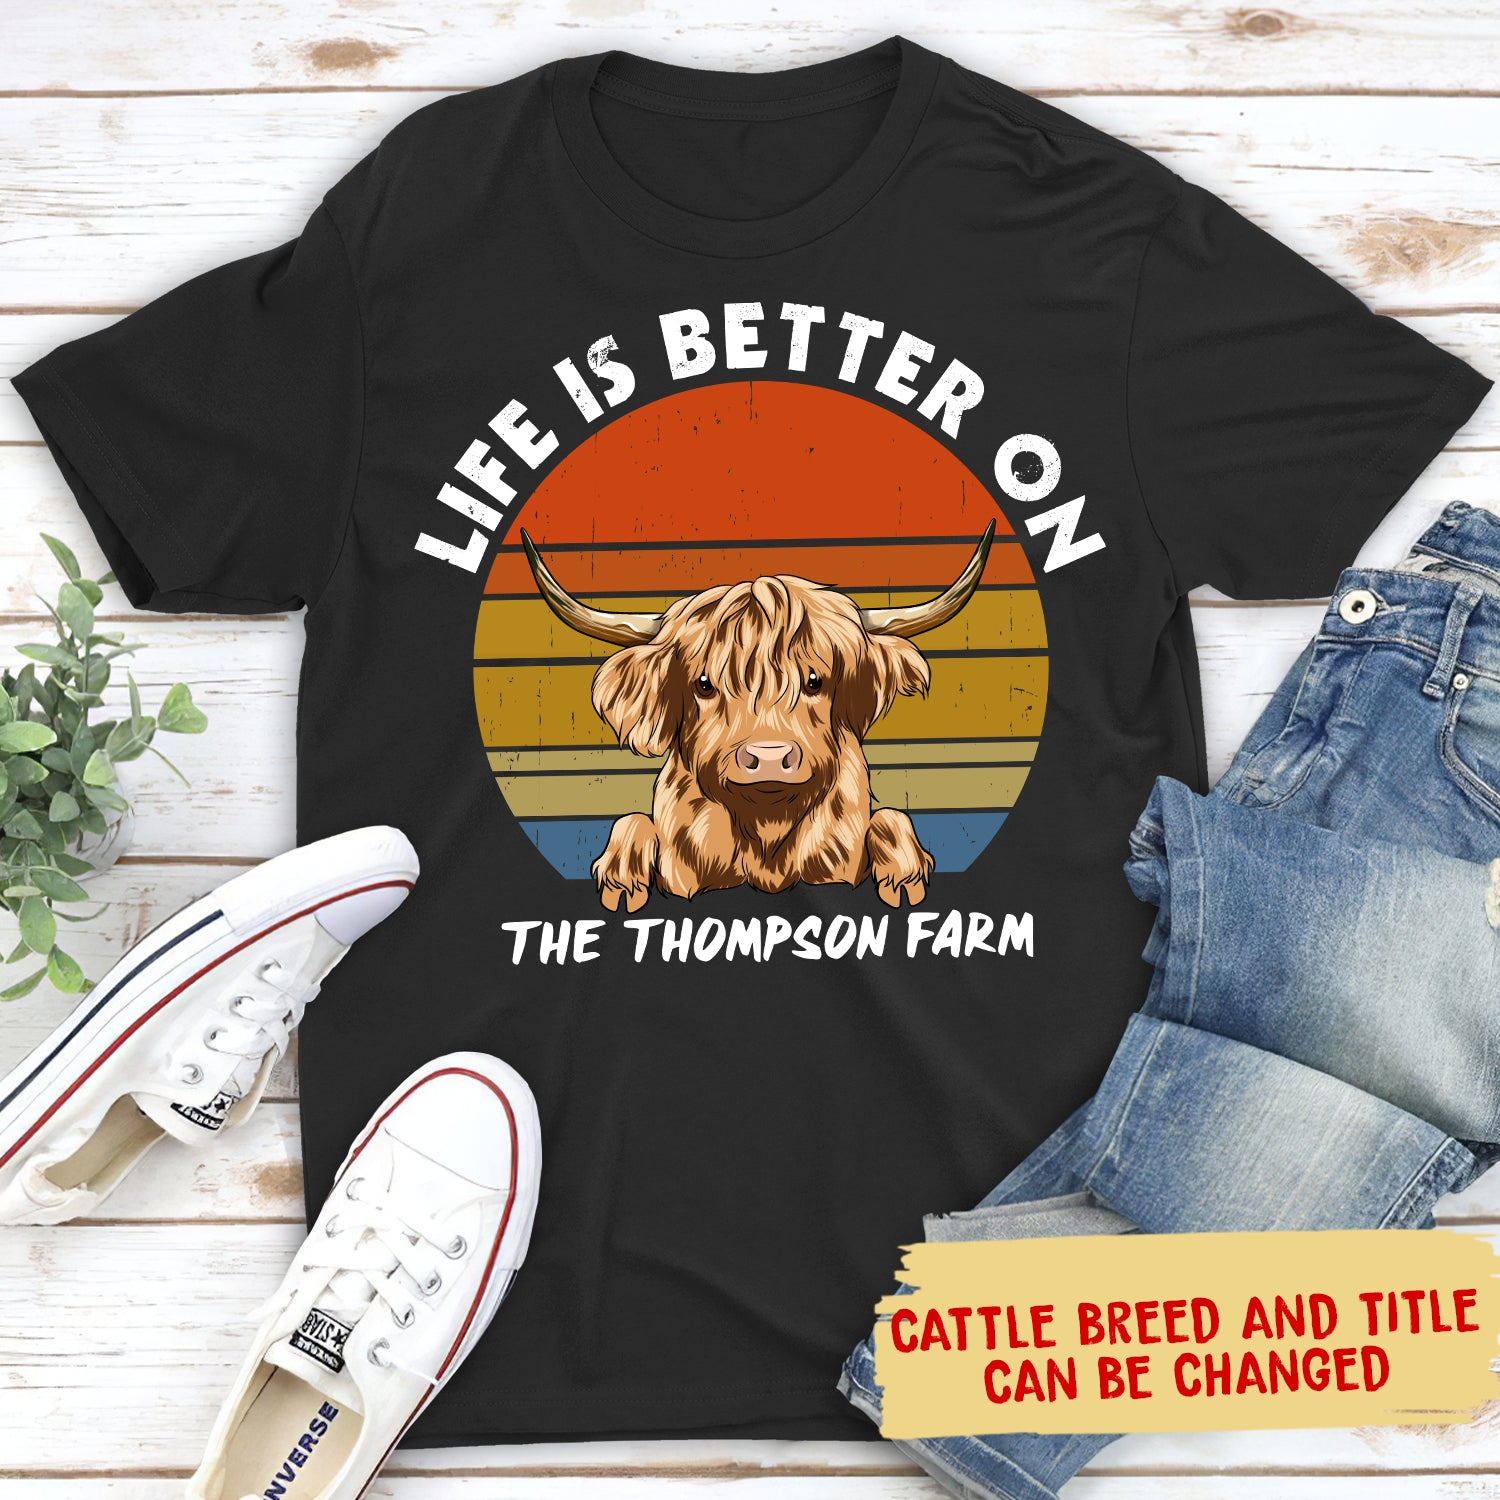 A Better Life - Personalized Custom Unisex T-Shirt